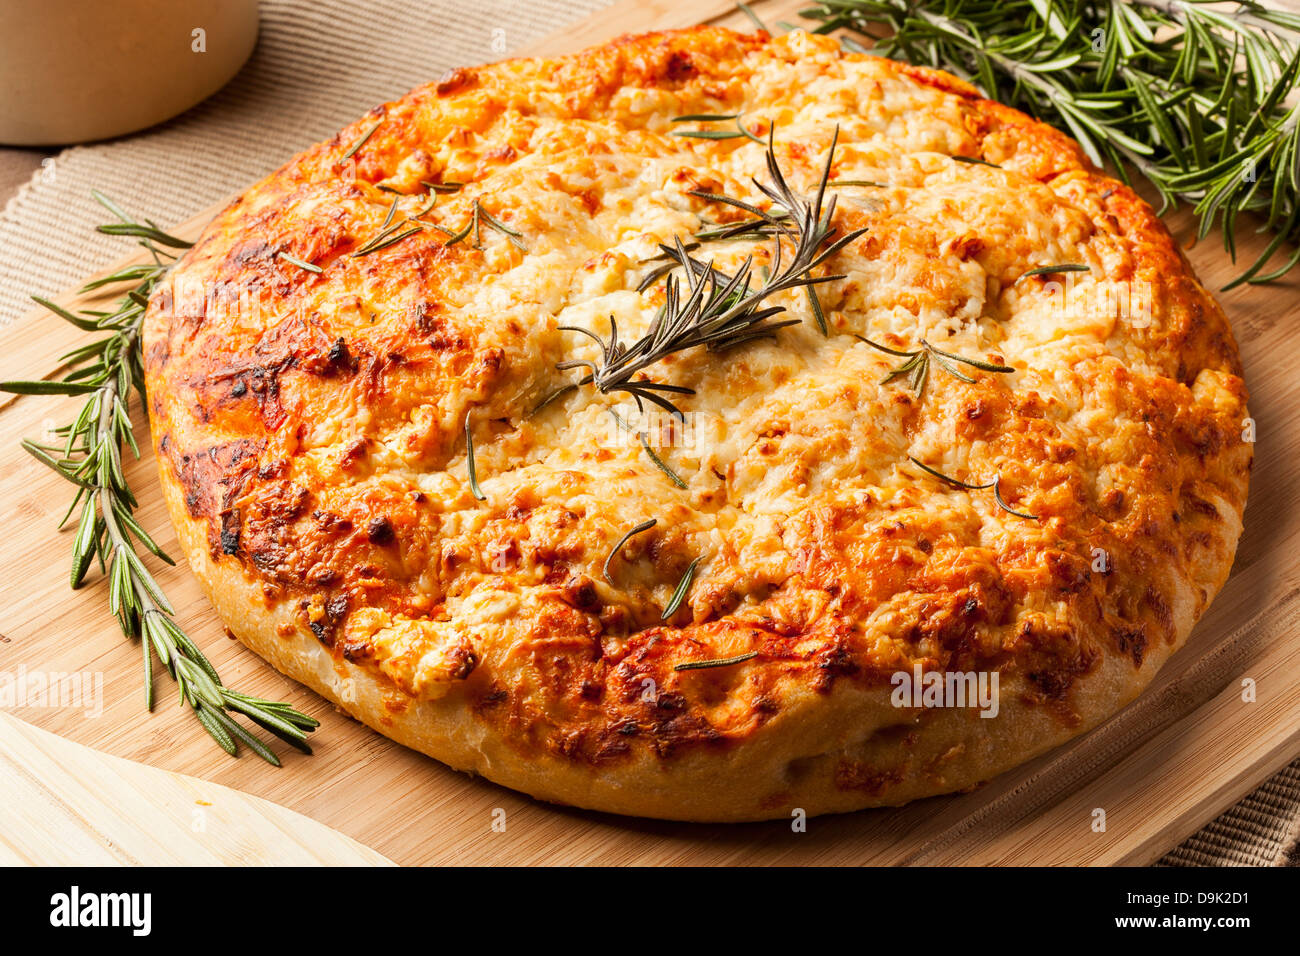 Fresh Homemade Italian Focaccia Bread with rosemary - Stock Image